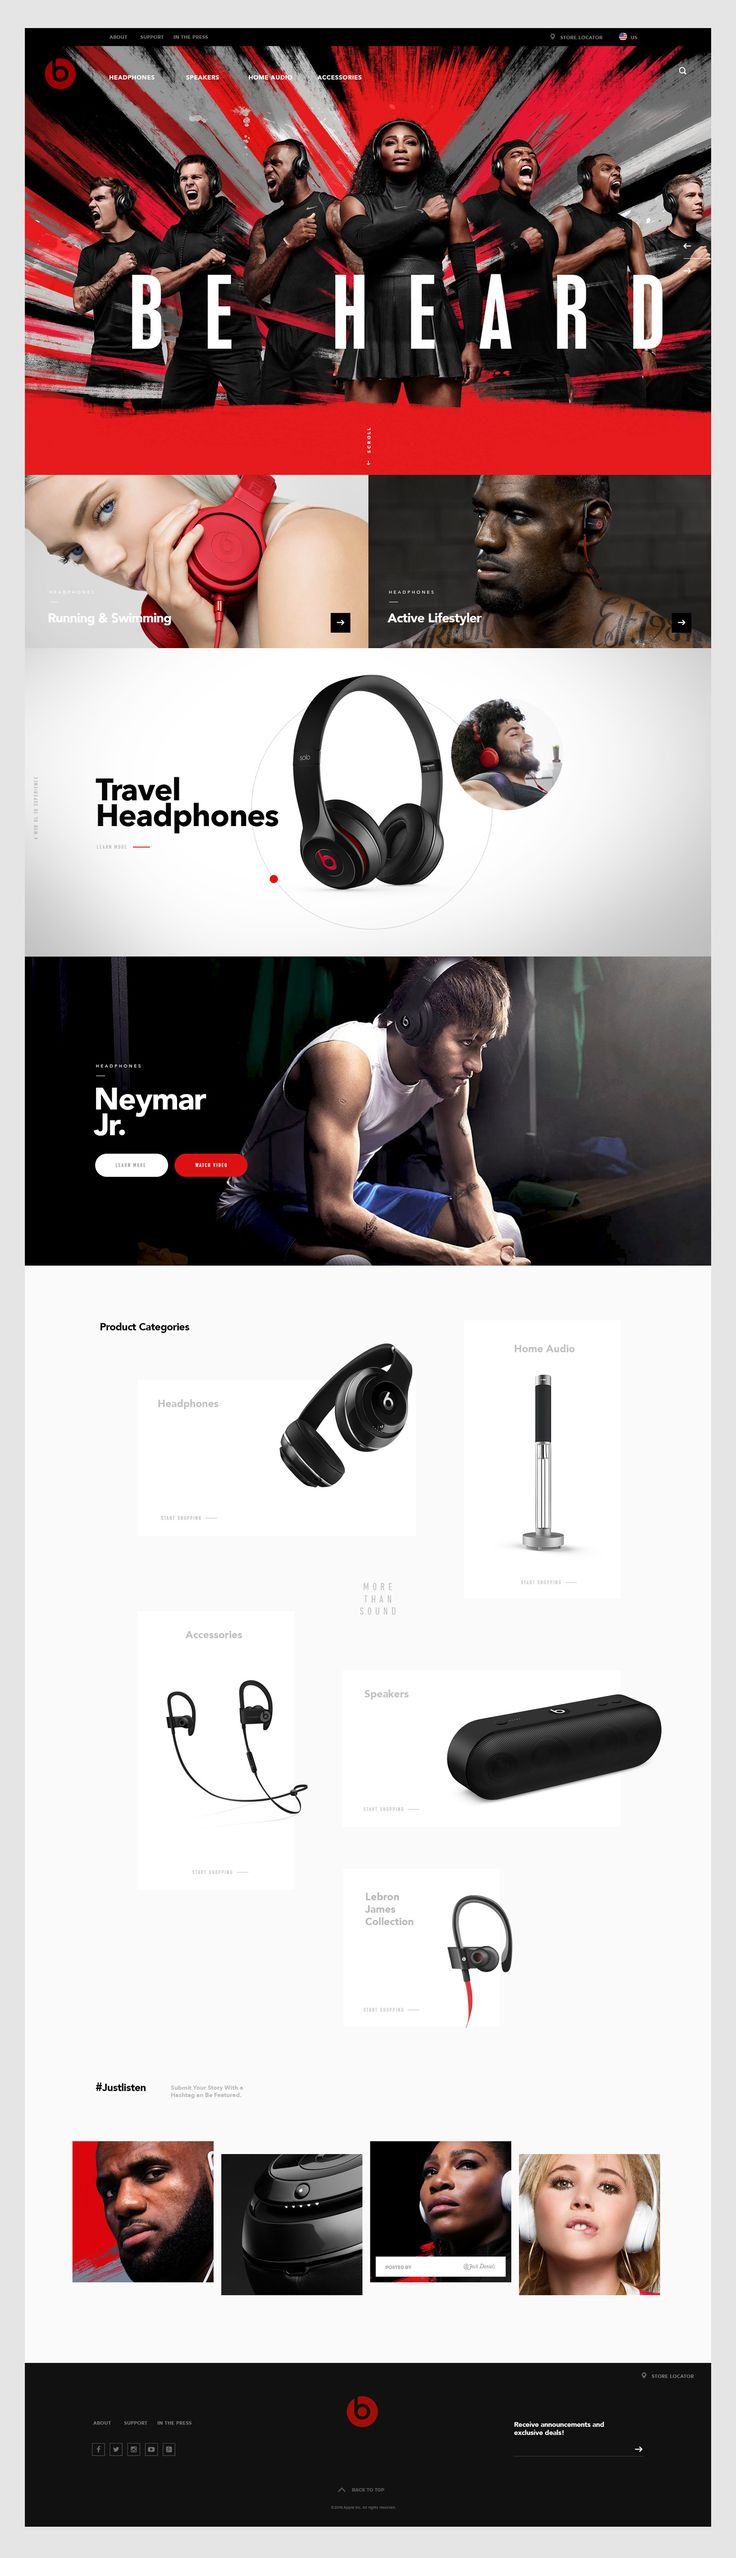 Beats by Dre website